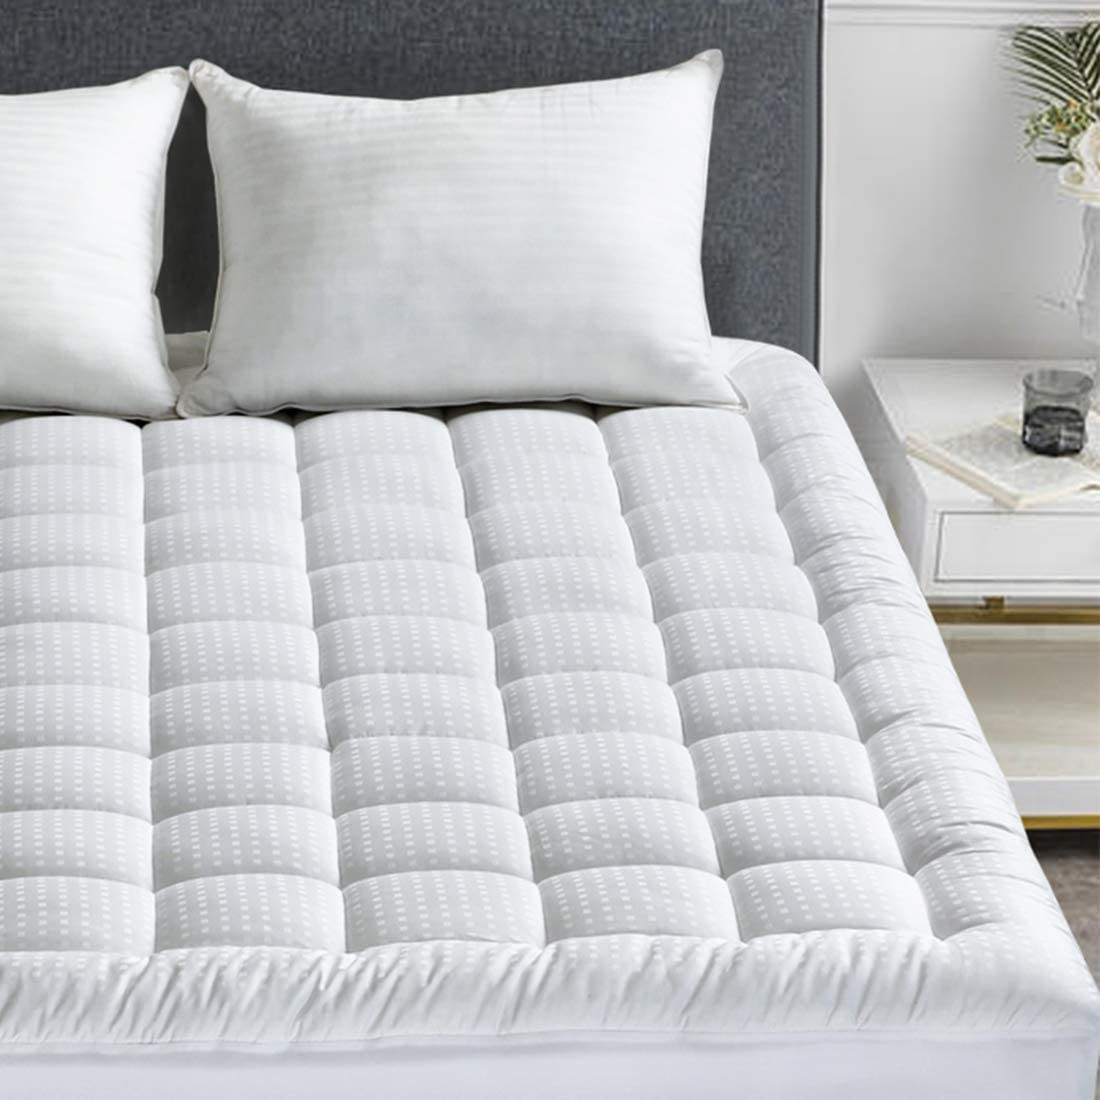 """HARNY Mattress Pad Cover Cal King Size 400TC Cotton Pillow Top Cooling Breathable Hypoallergenic Mattress Topper Quilted Fitted with 8-21/""""Deep Pocket"""